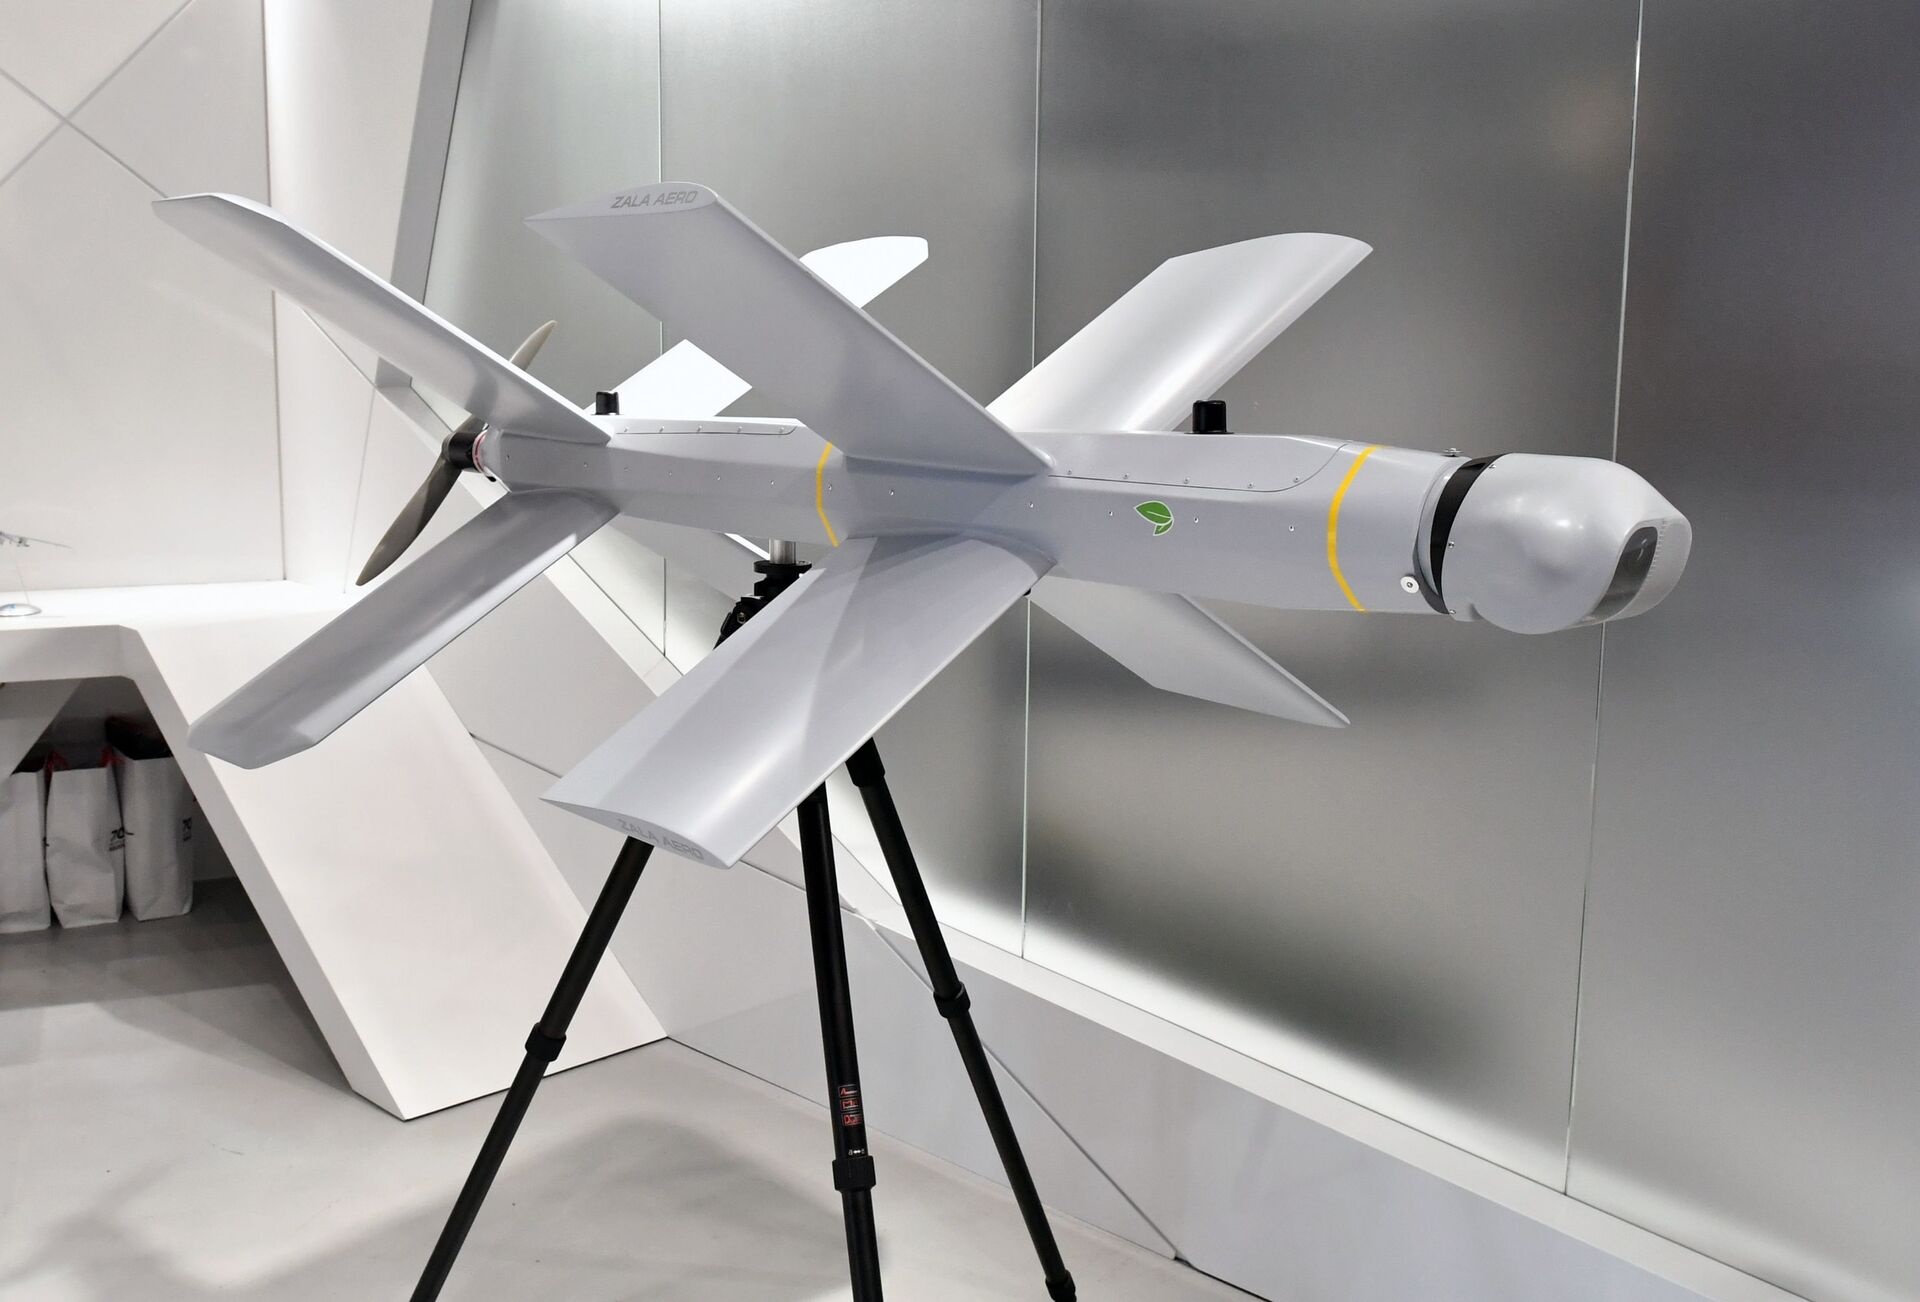 An unmanned aerial vehicle is displayed at the ARMY 2019 International Military and Technical Forum, in Kubinka, Moscow region, Russia - Sputnik International, 1920, 07.09.2021